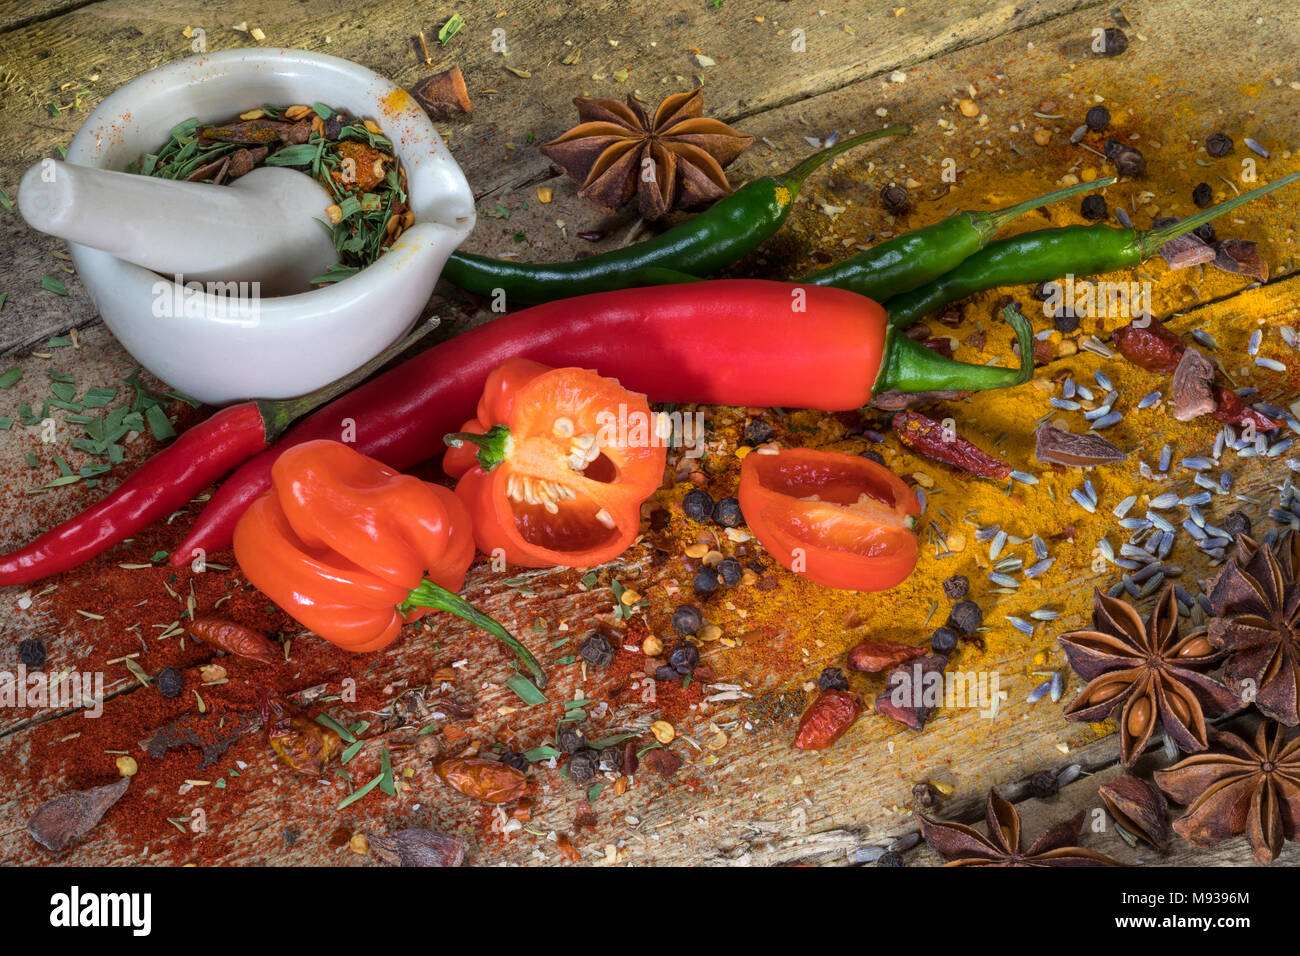 Hot Chili Peppers - Herbs and Spices on a rustic farmhouse table. - Stock Image